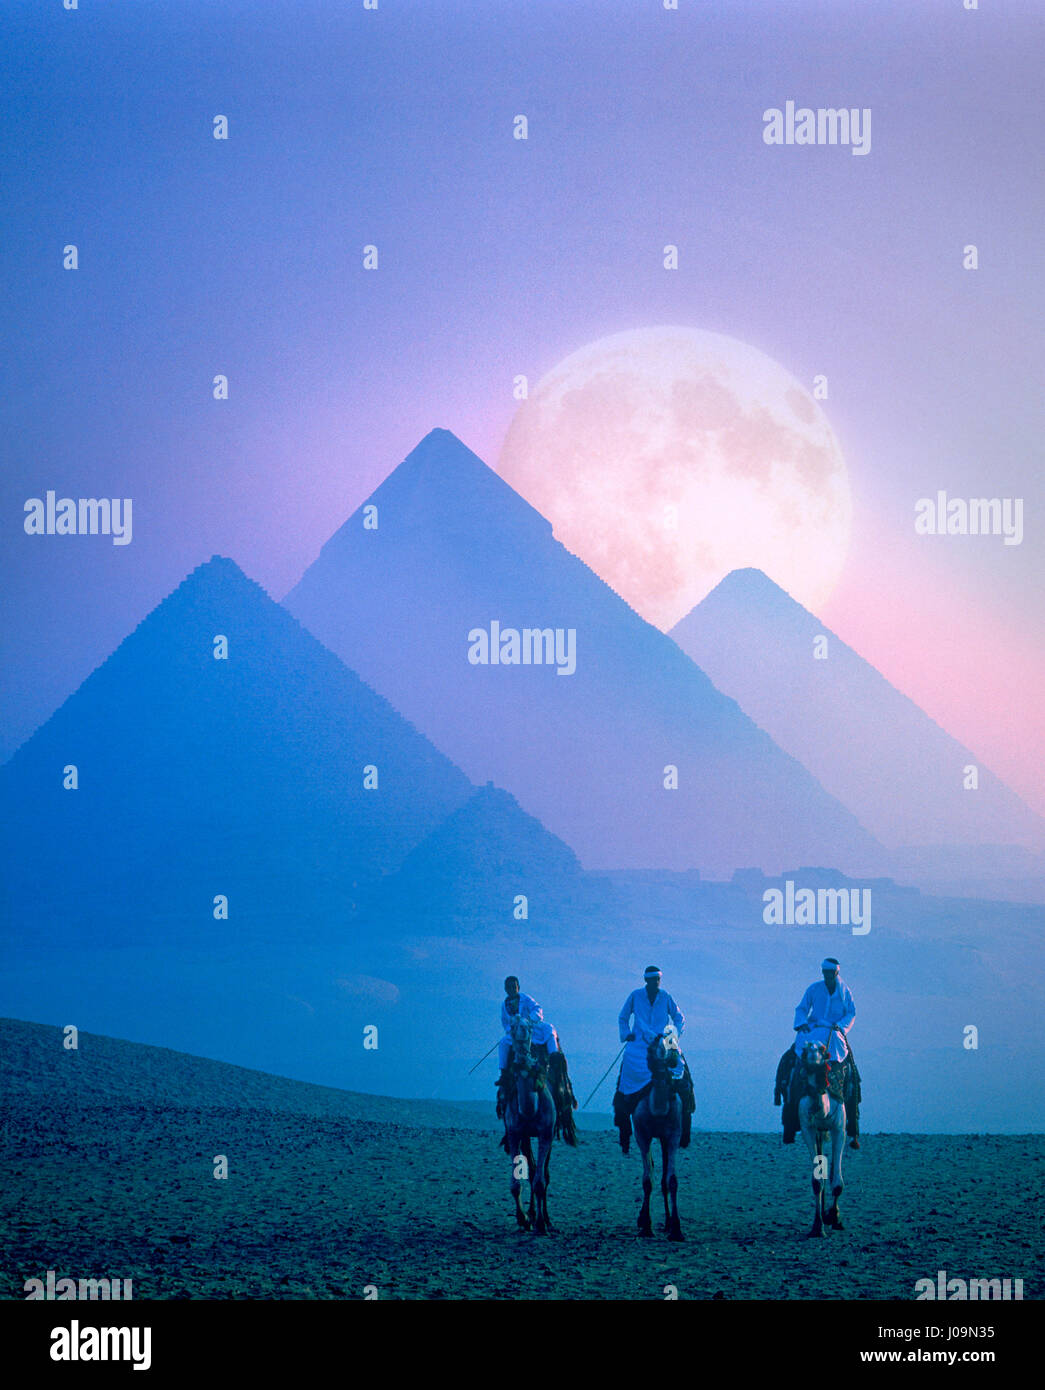 Full moon rising behind the Pyramids, Giza, Cairo, Egypt Stock Photo